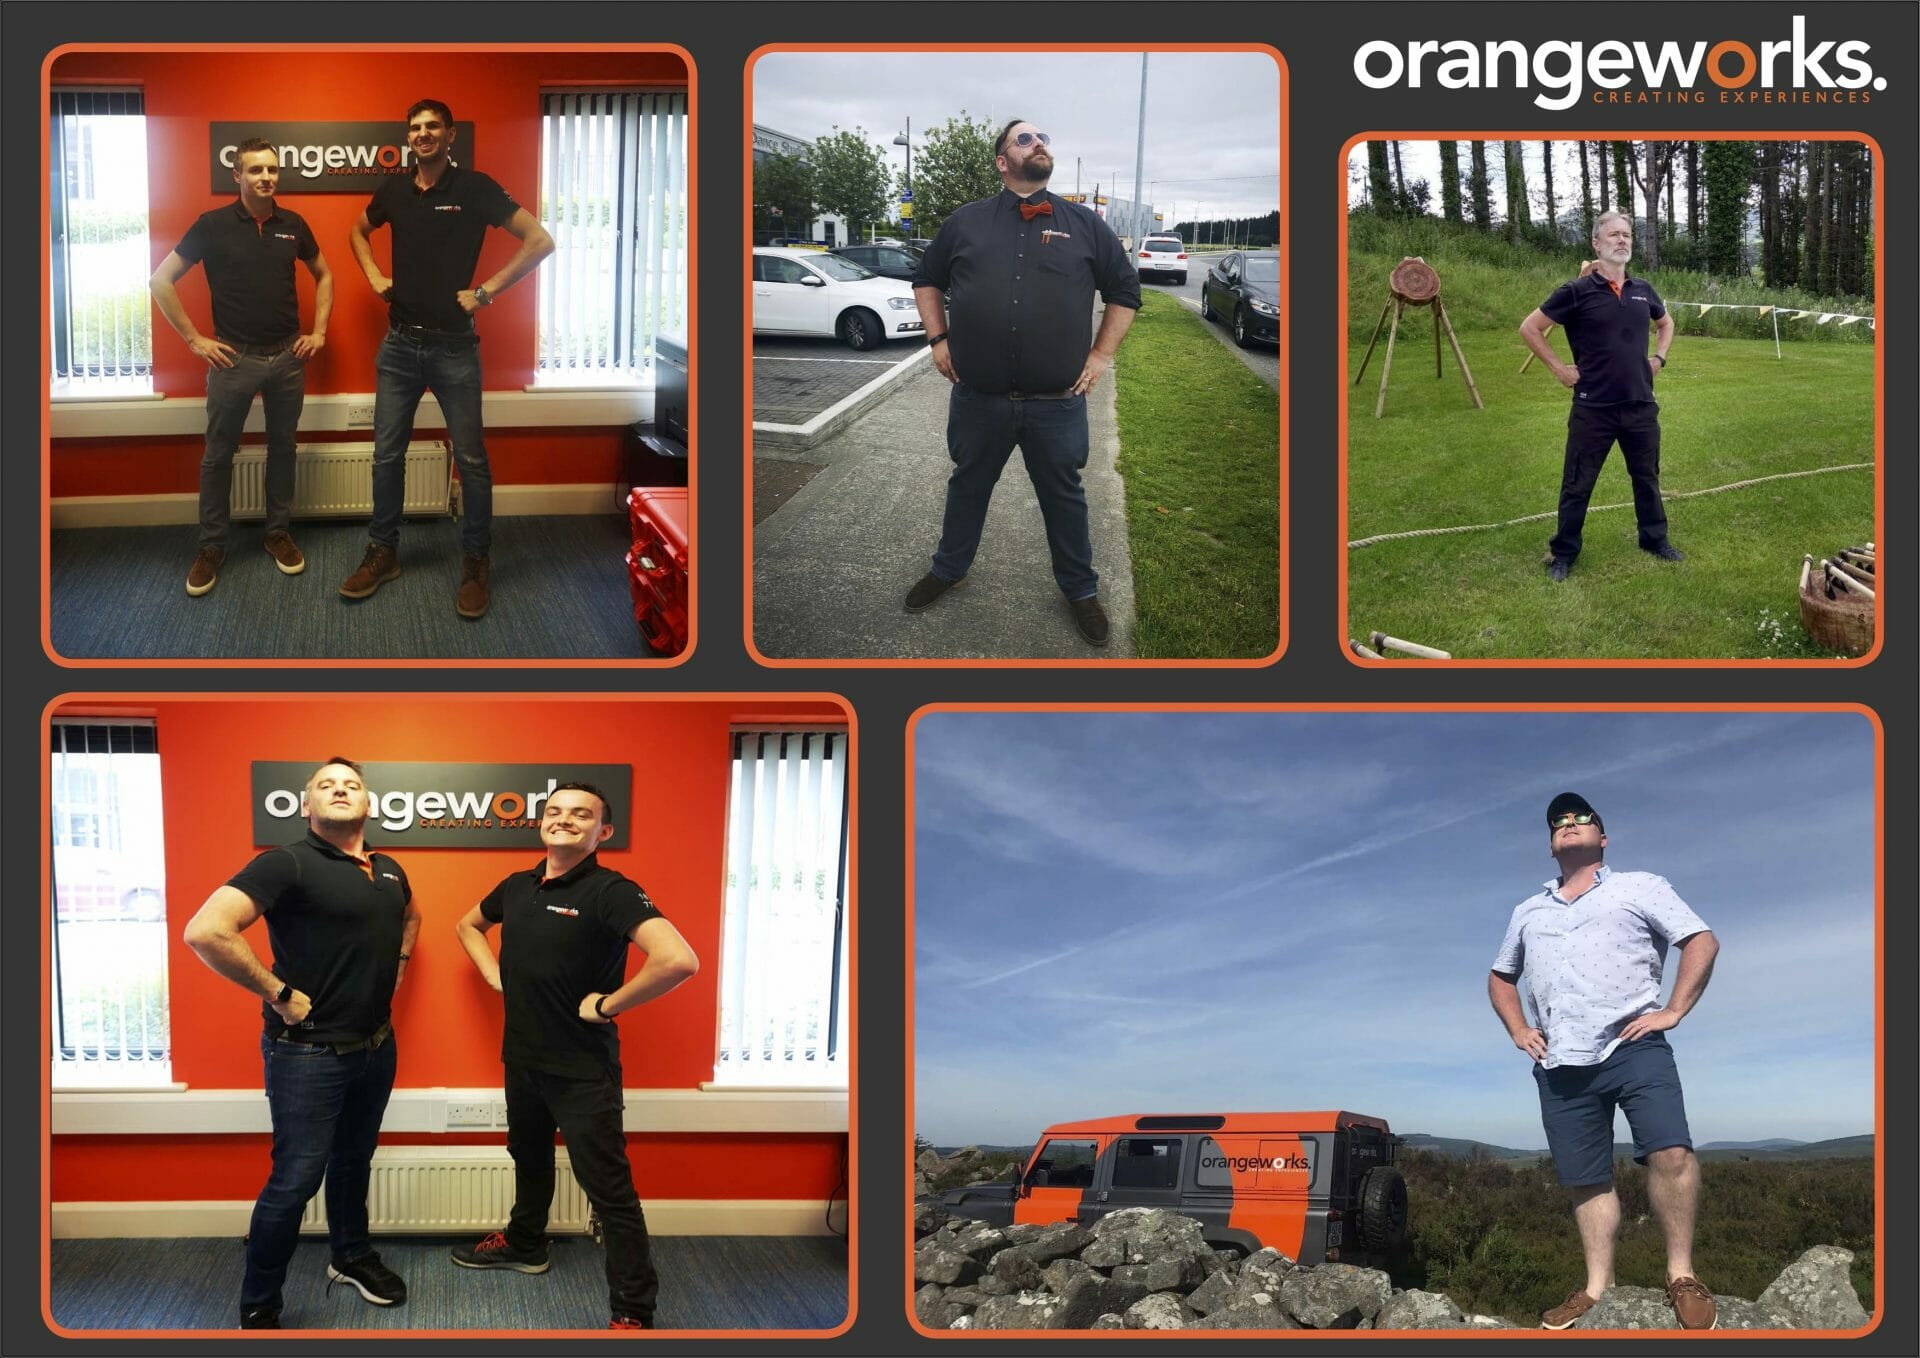 The team at orangeworks practicing their power posing, also known as the superman stance.